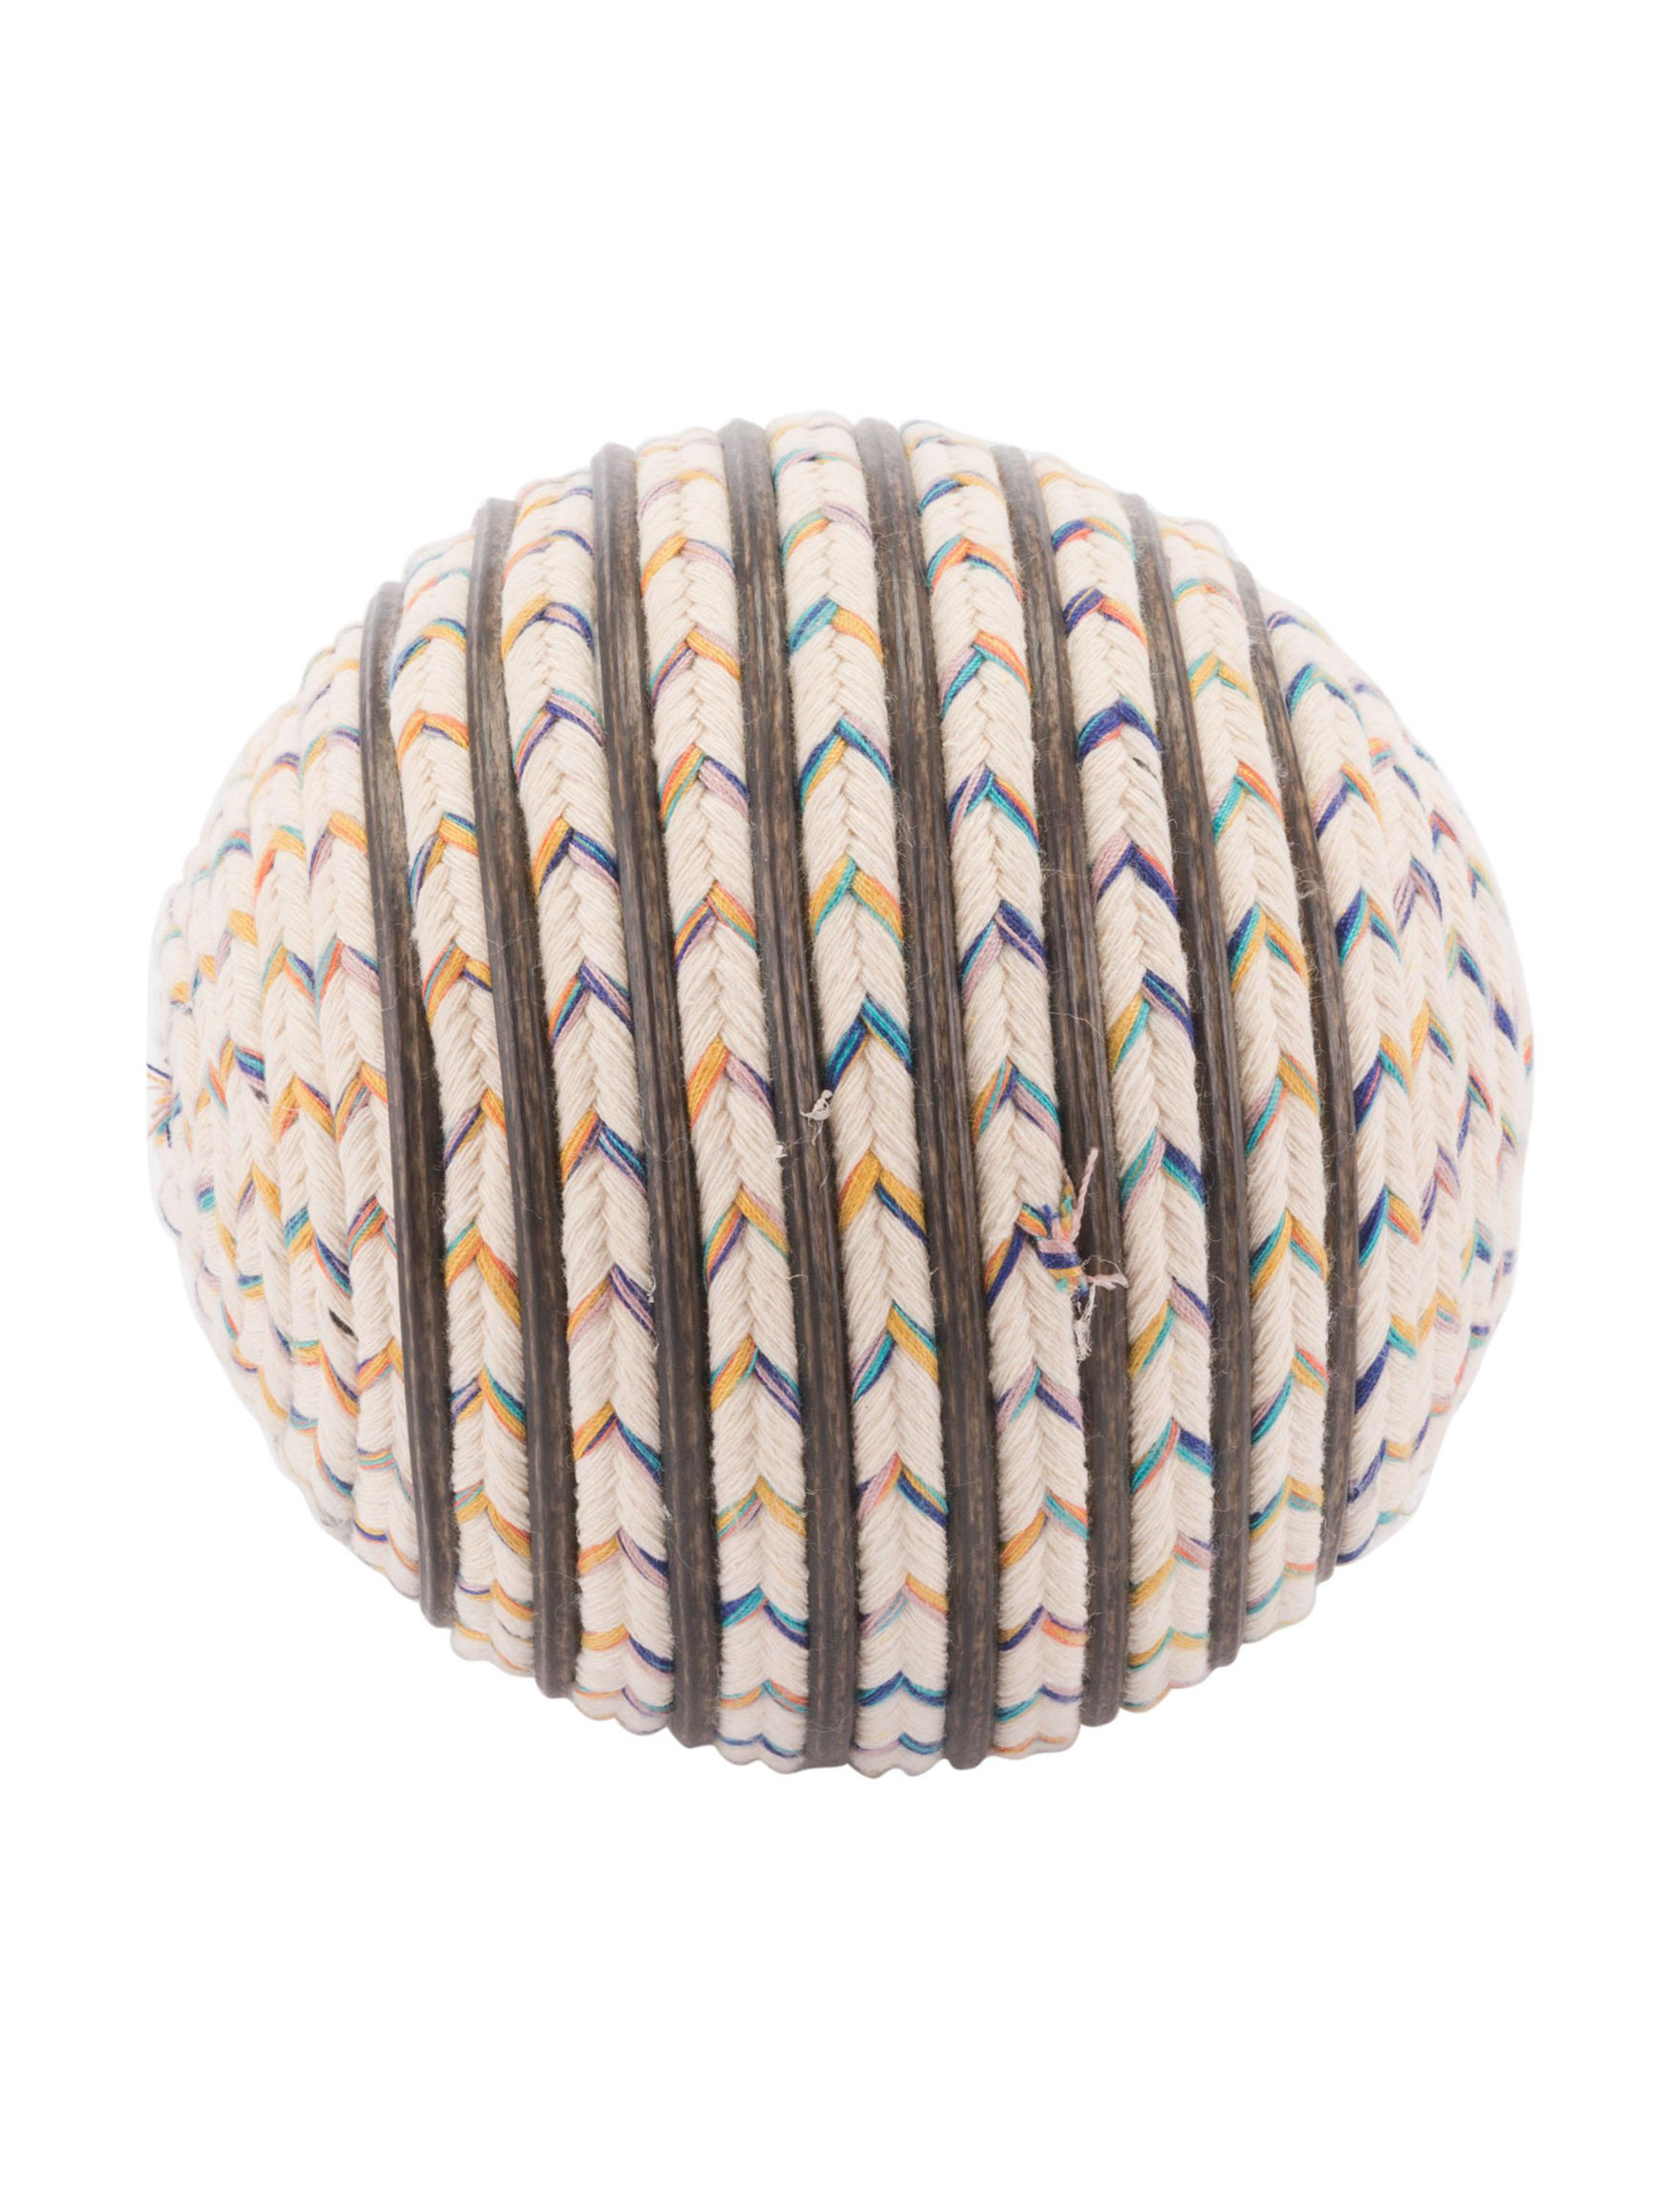 Zuo Modern Beige Decorative Objects Home Accents